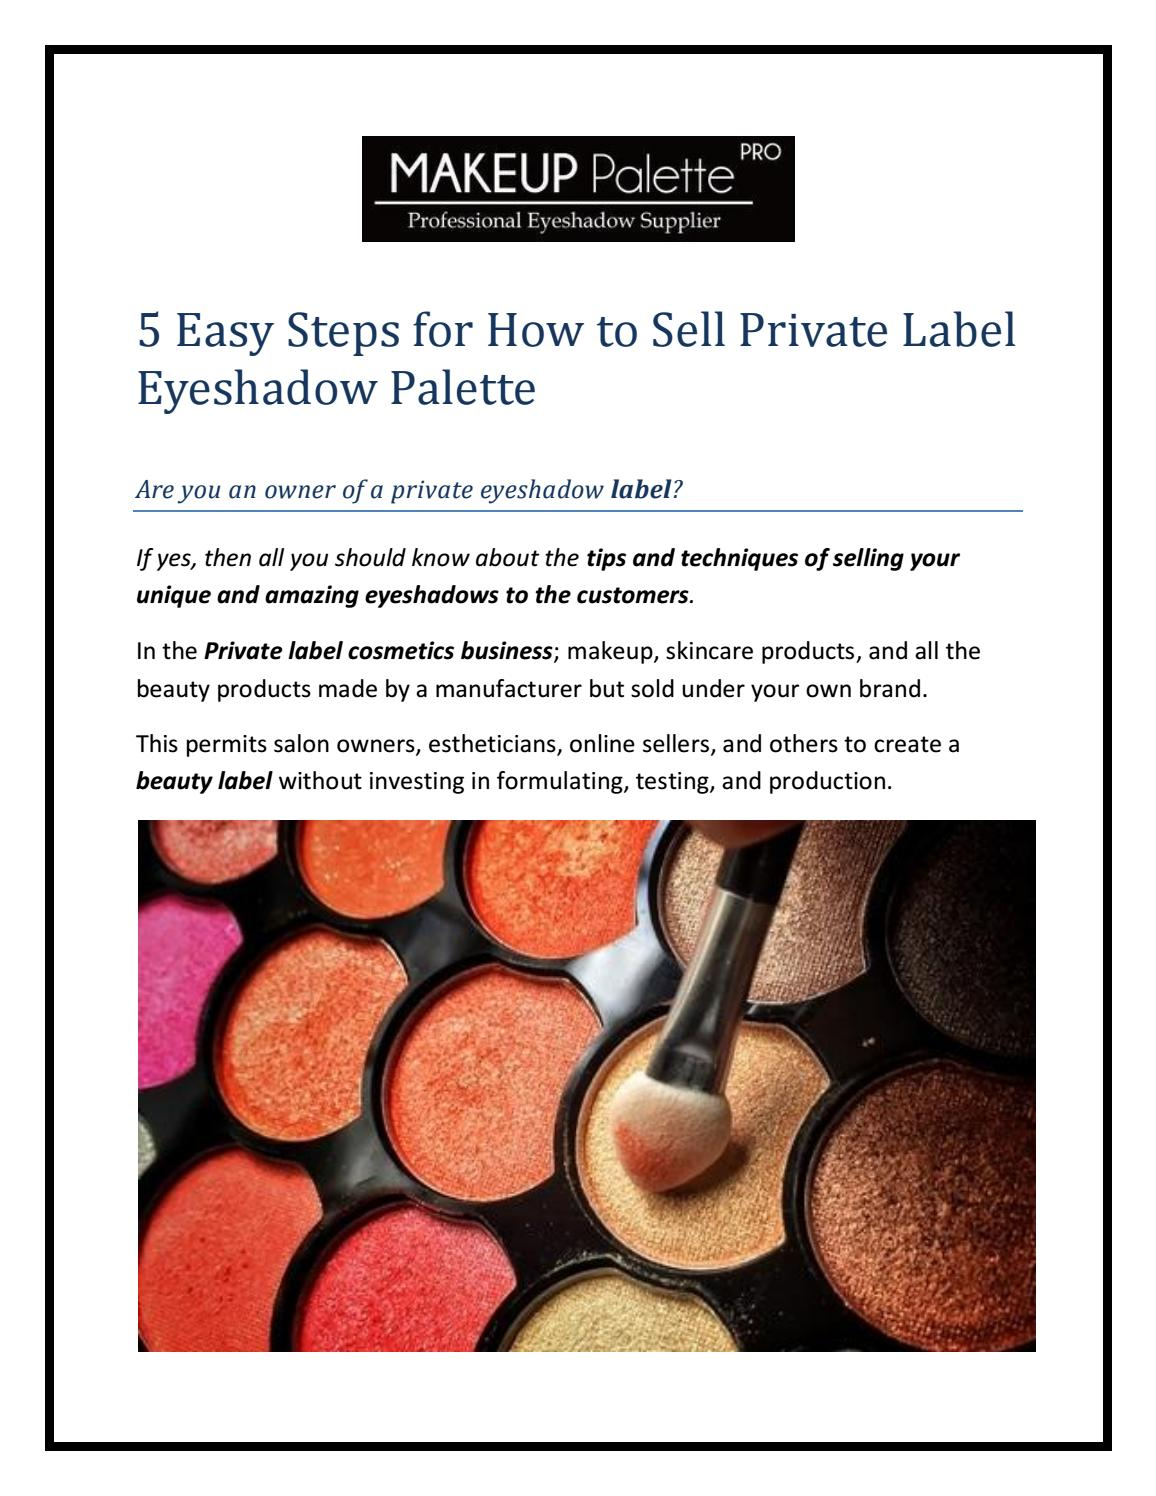 To Private Label Eyeshadow Palette